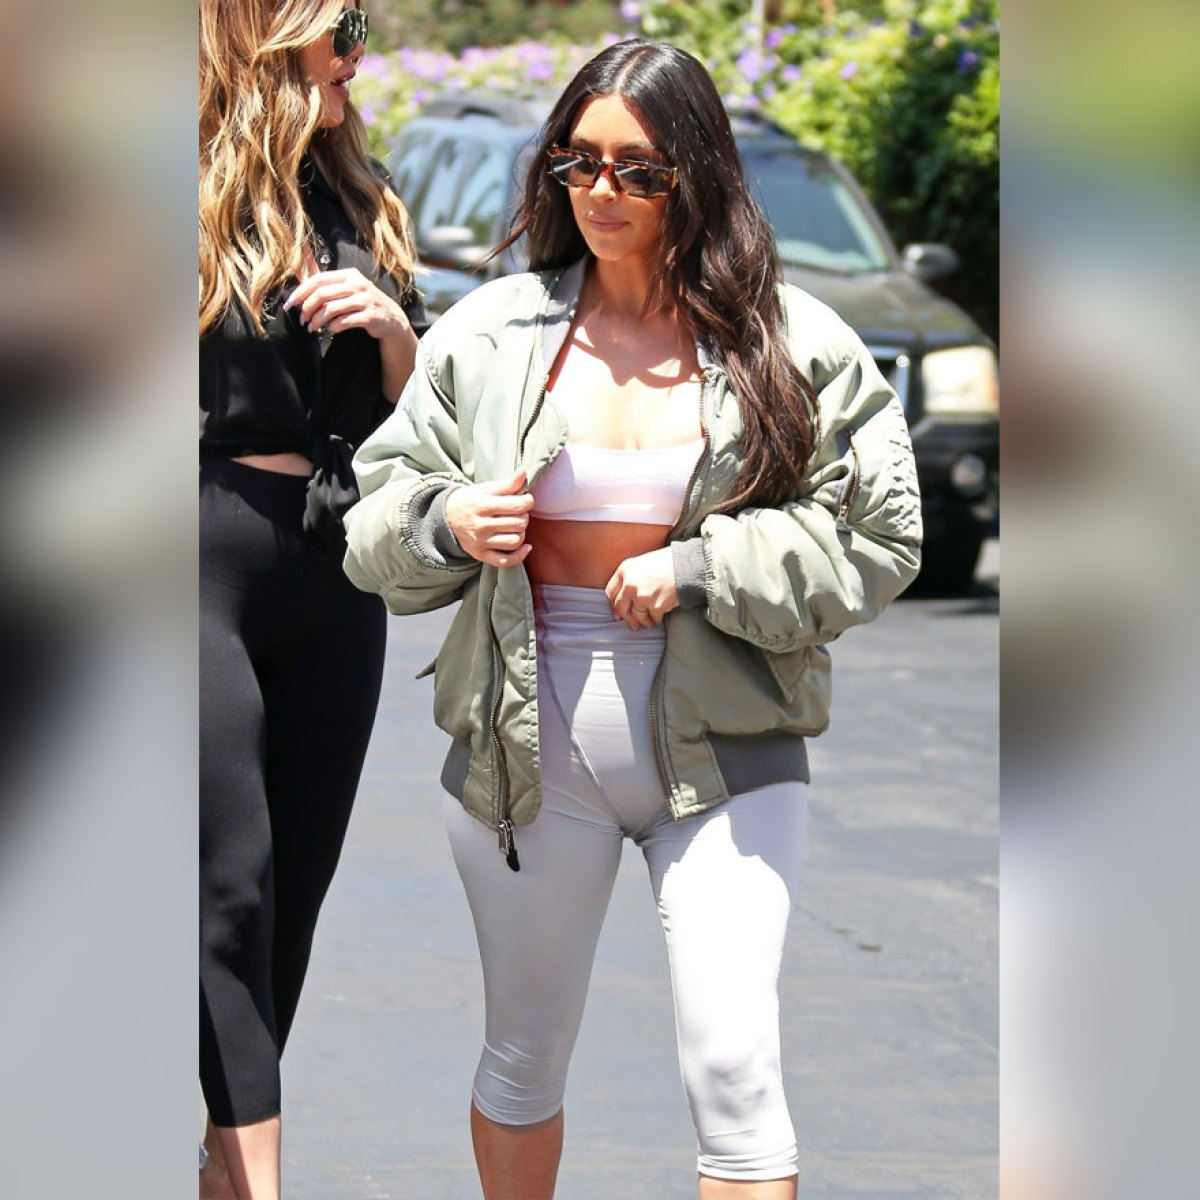 Kourtney Kardashian Cameltoe As She Leaves Workout In Calabasas